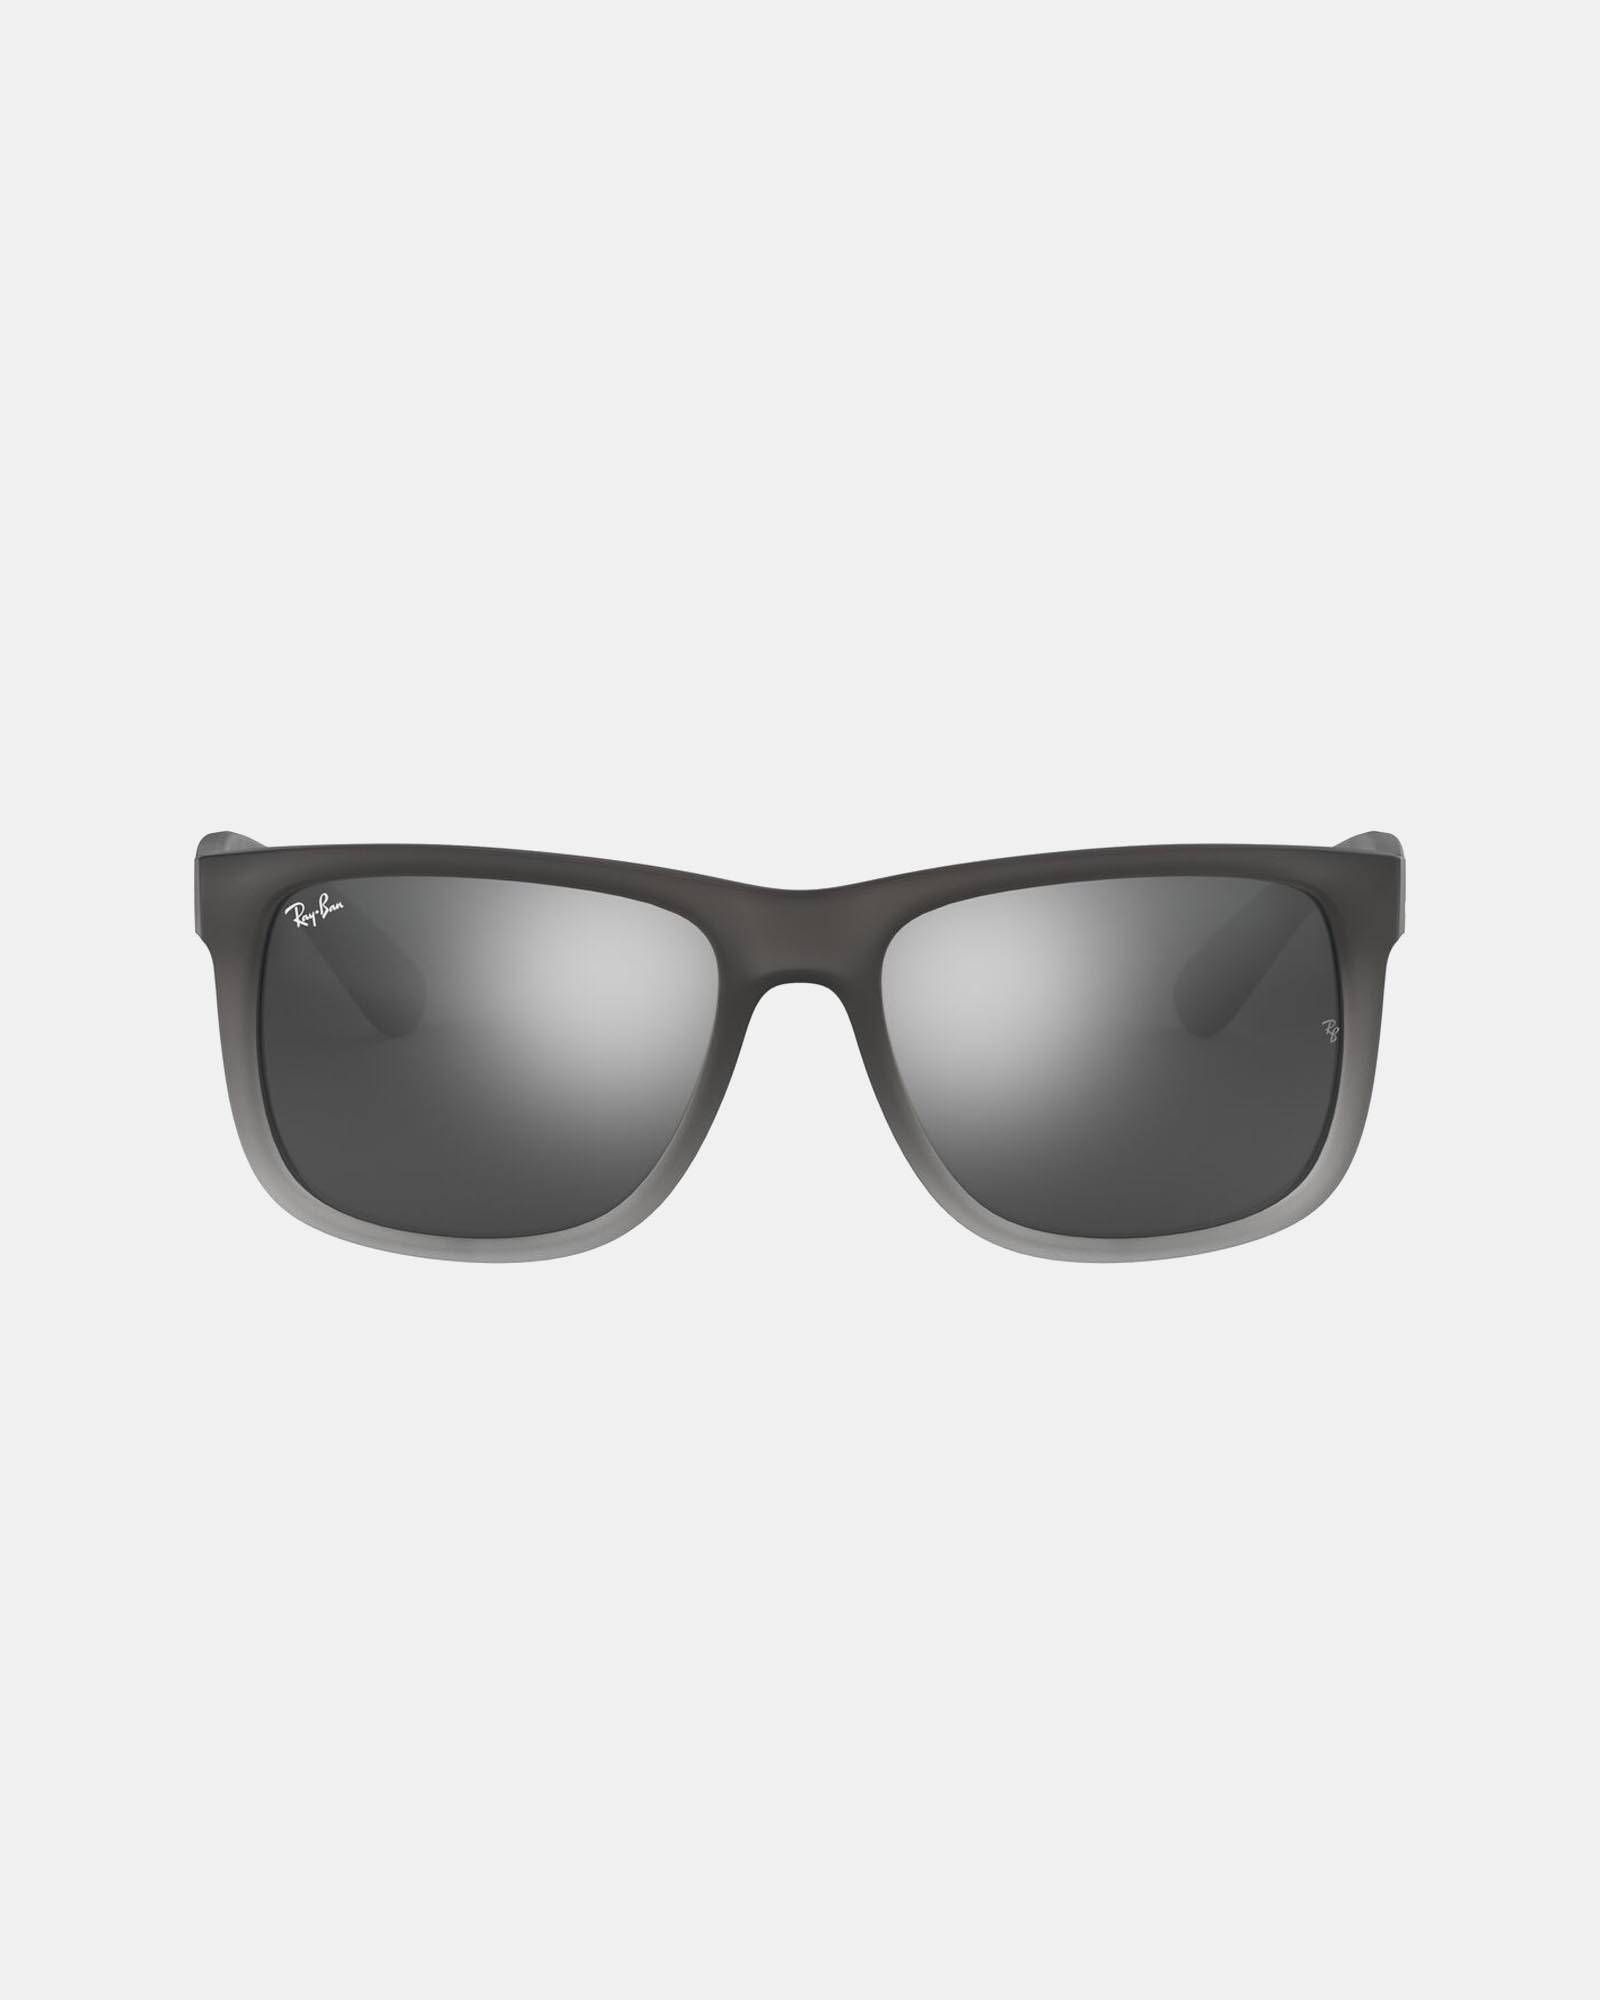 Ray Ban Accessories Sunglasses Ray Ban Australia